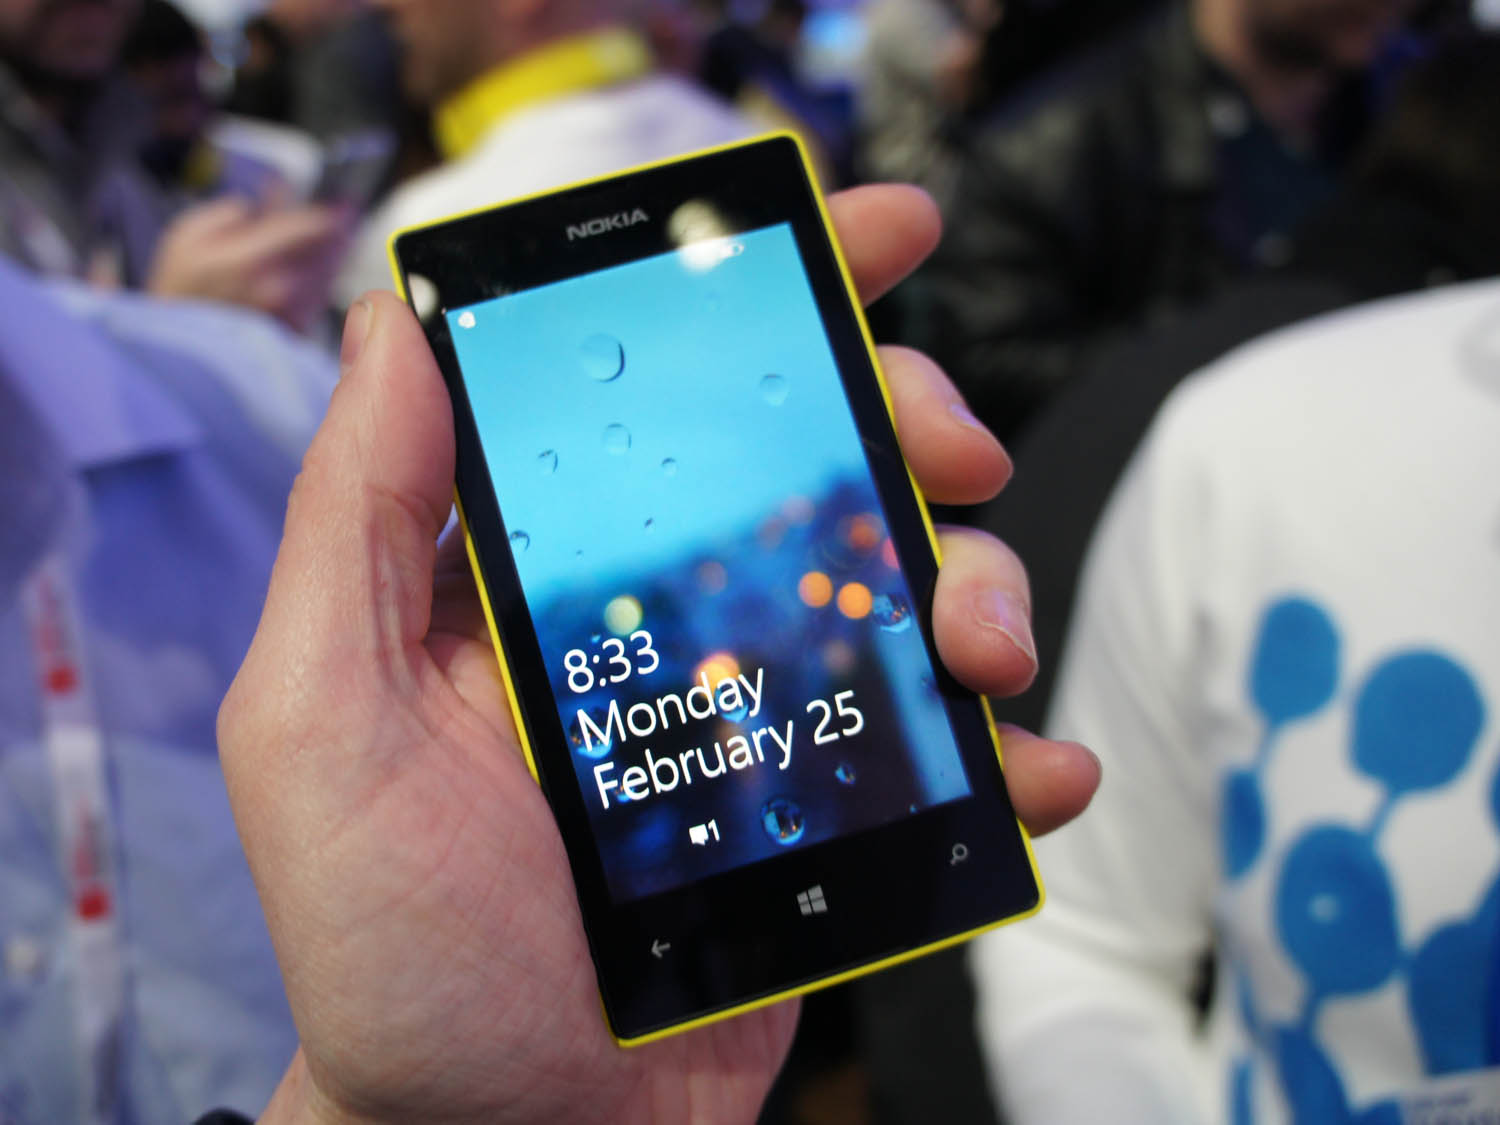 Nokia Lumia 520 is Nokia smartphone family with Windows Phone 8 operating  system. For everyone who love to use or try to taste the Microsoft Windows  Phone 8 ...